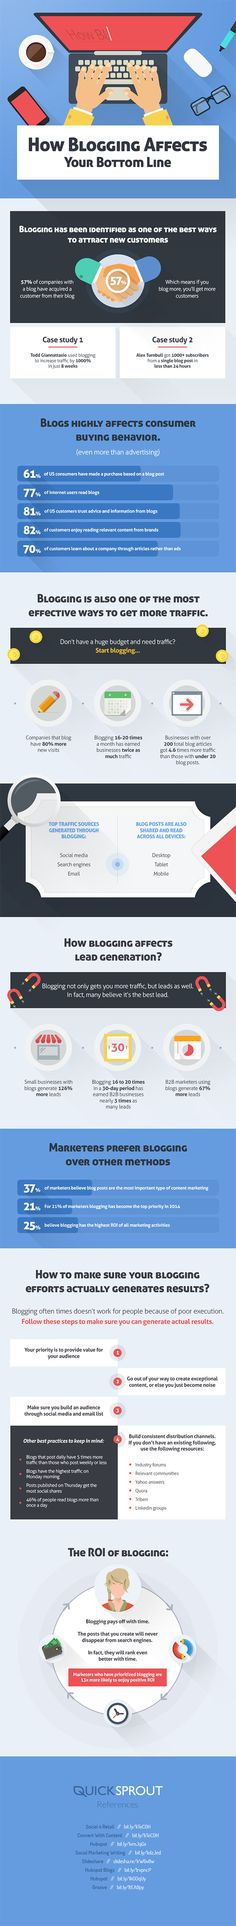 How Blogging Can Massively Improve Your Bottom Line #Infographic